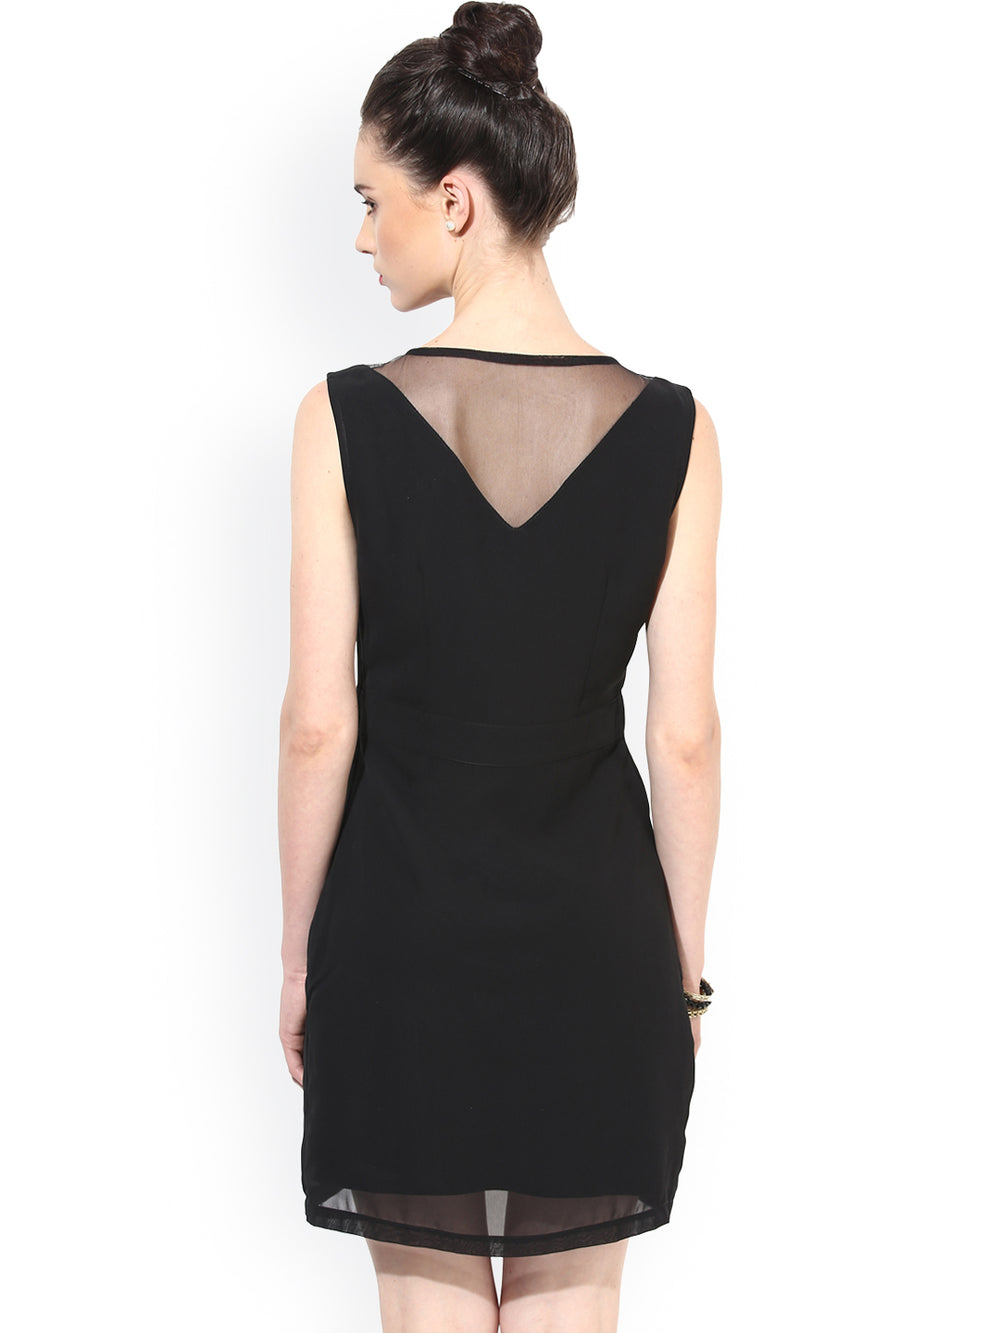 Besiva Black Sheath Dress